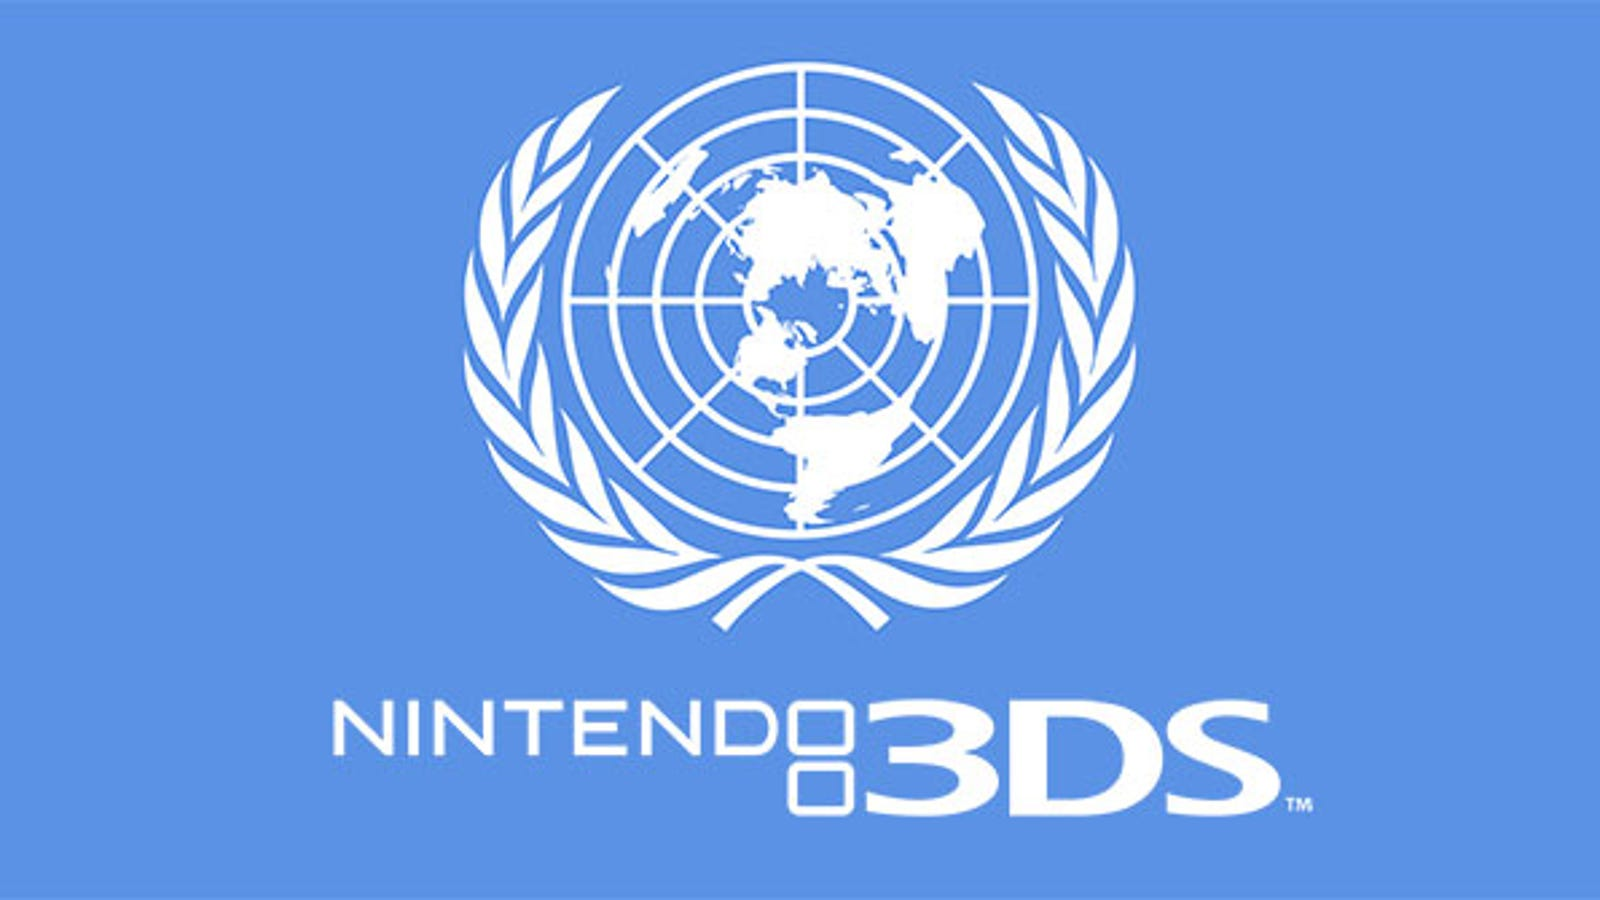 Make Your 3DS Region-Free, The Easy Way